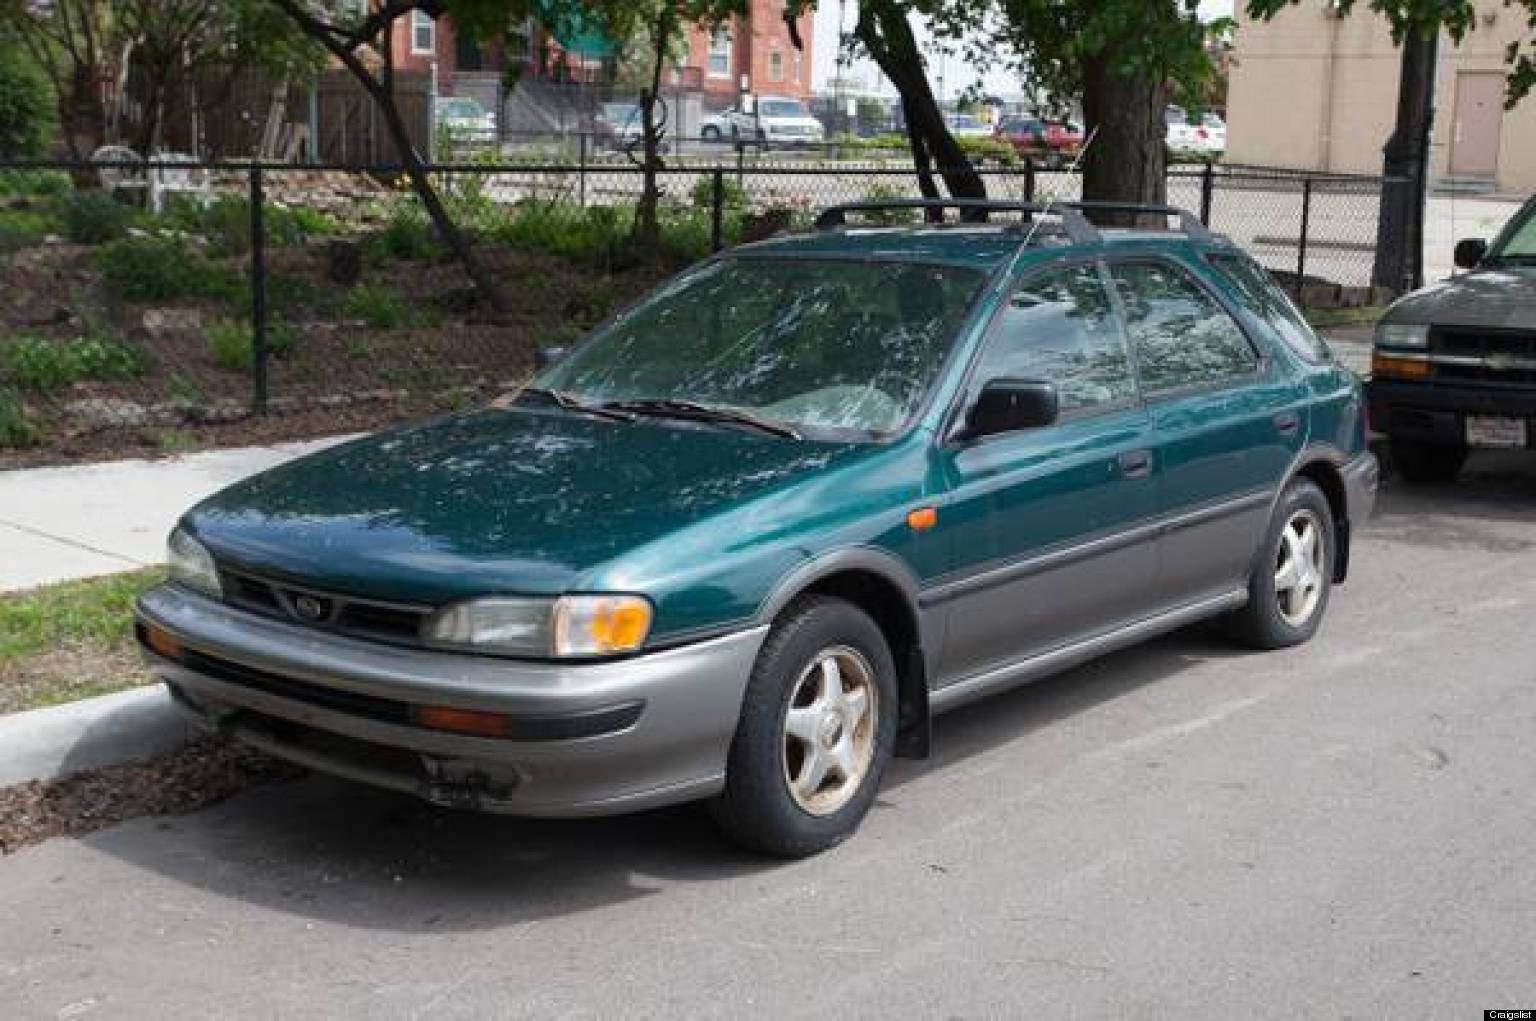 Subaru Craigslist Ad Is Brutally Hilariously Honest About